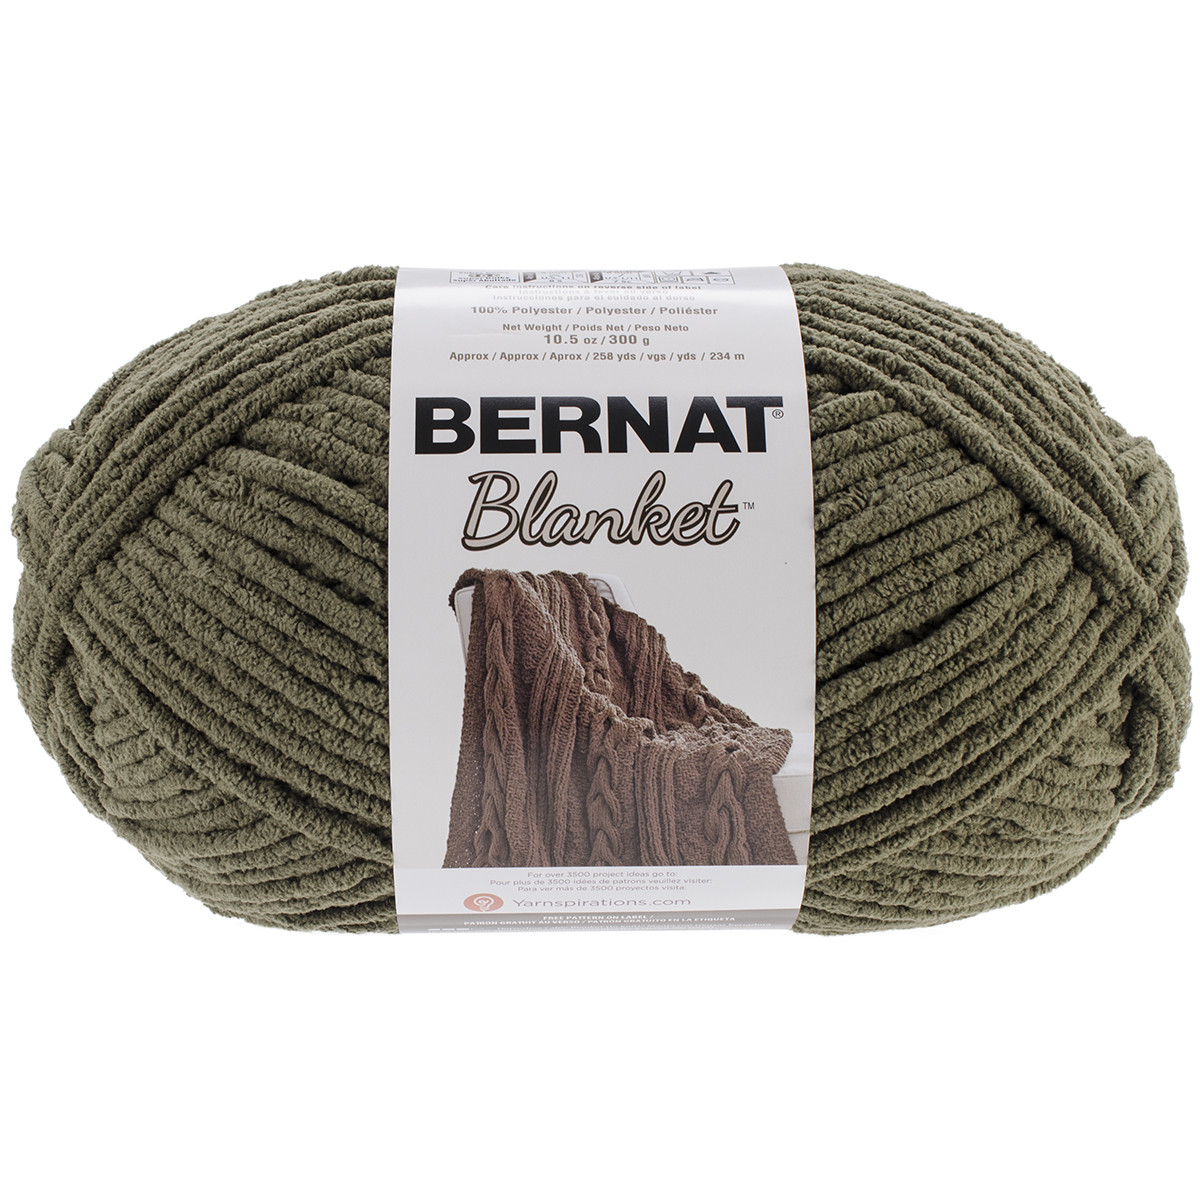 Bernat Blanket Big Ball Yarn Luxury Spinrite Bernat Blanket Big Ball Yarn Of Innovative 41 Ideas Bernat Blanket Big Ball Yarn